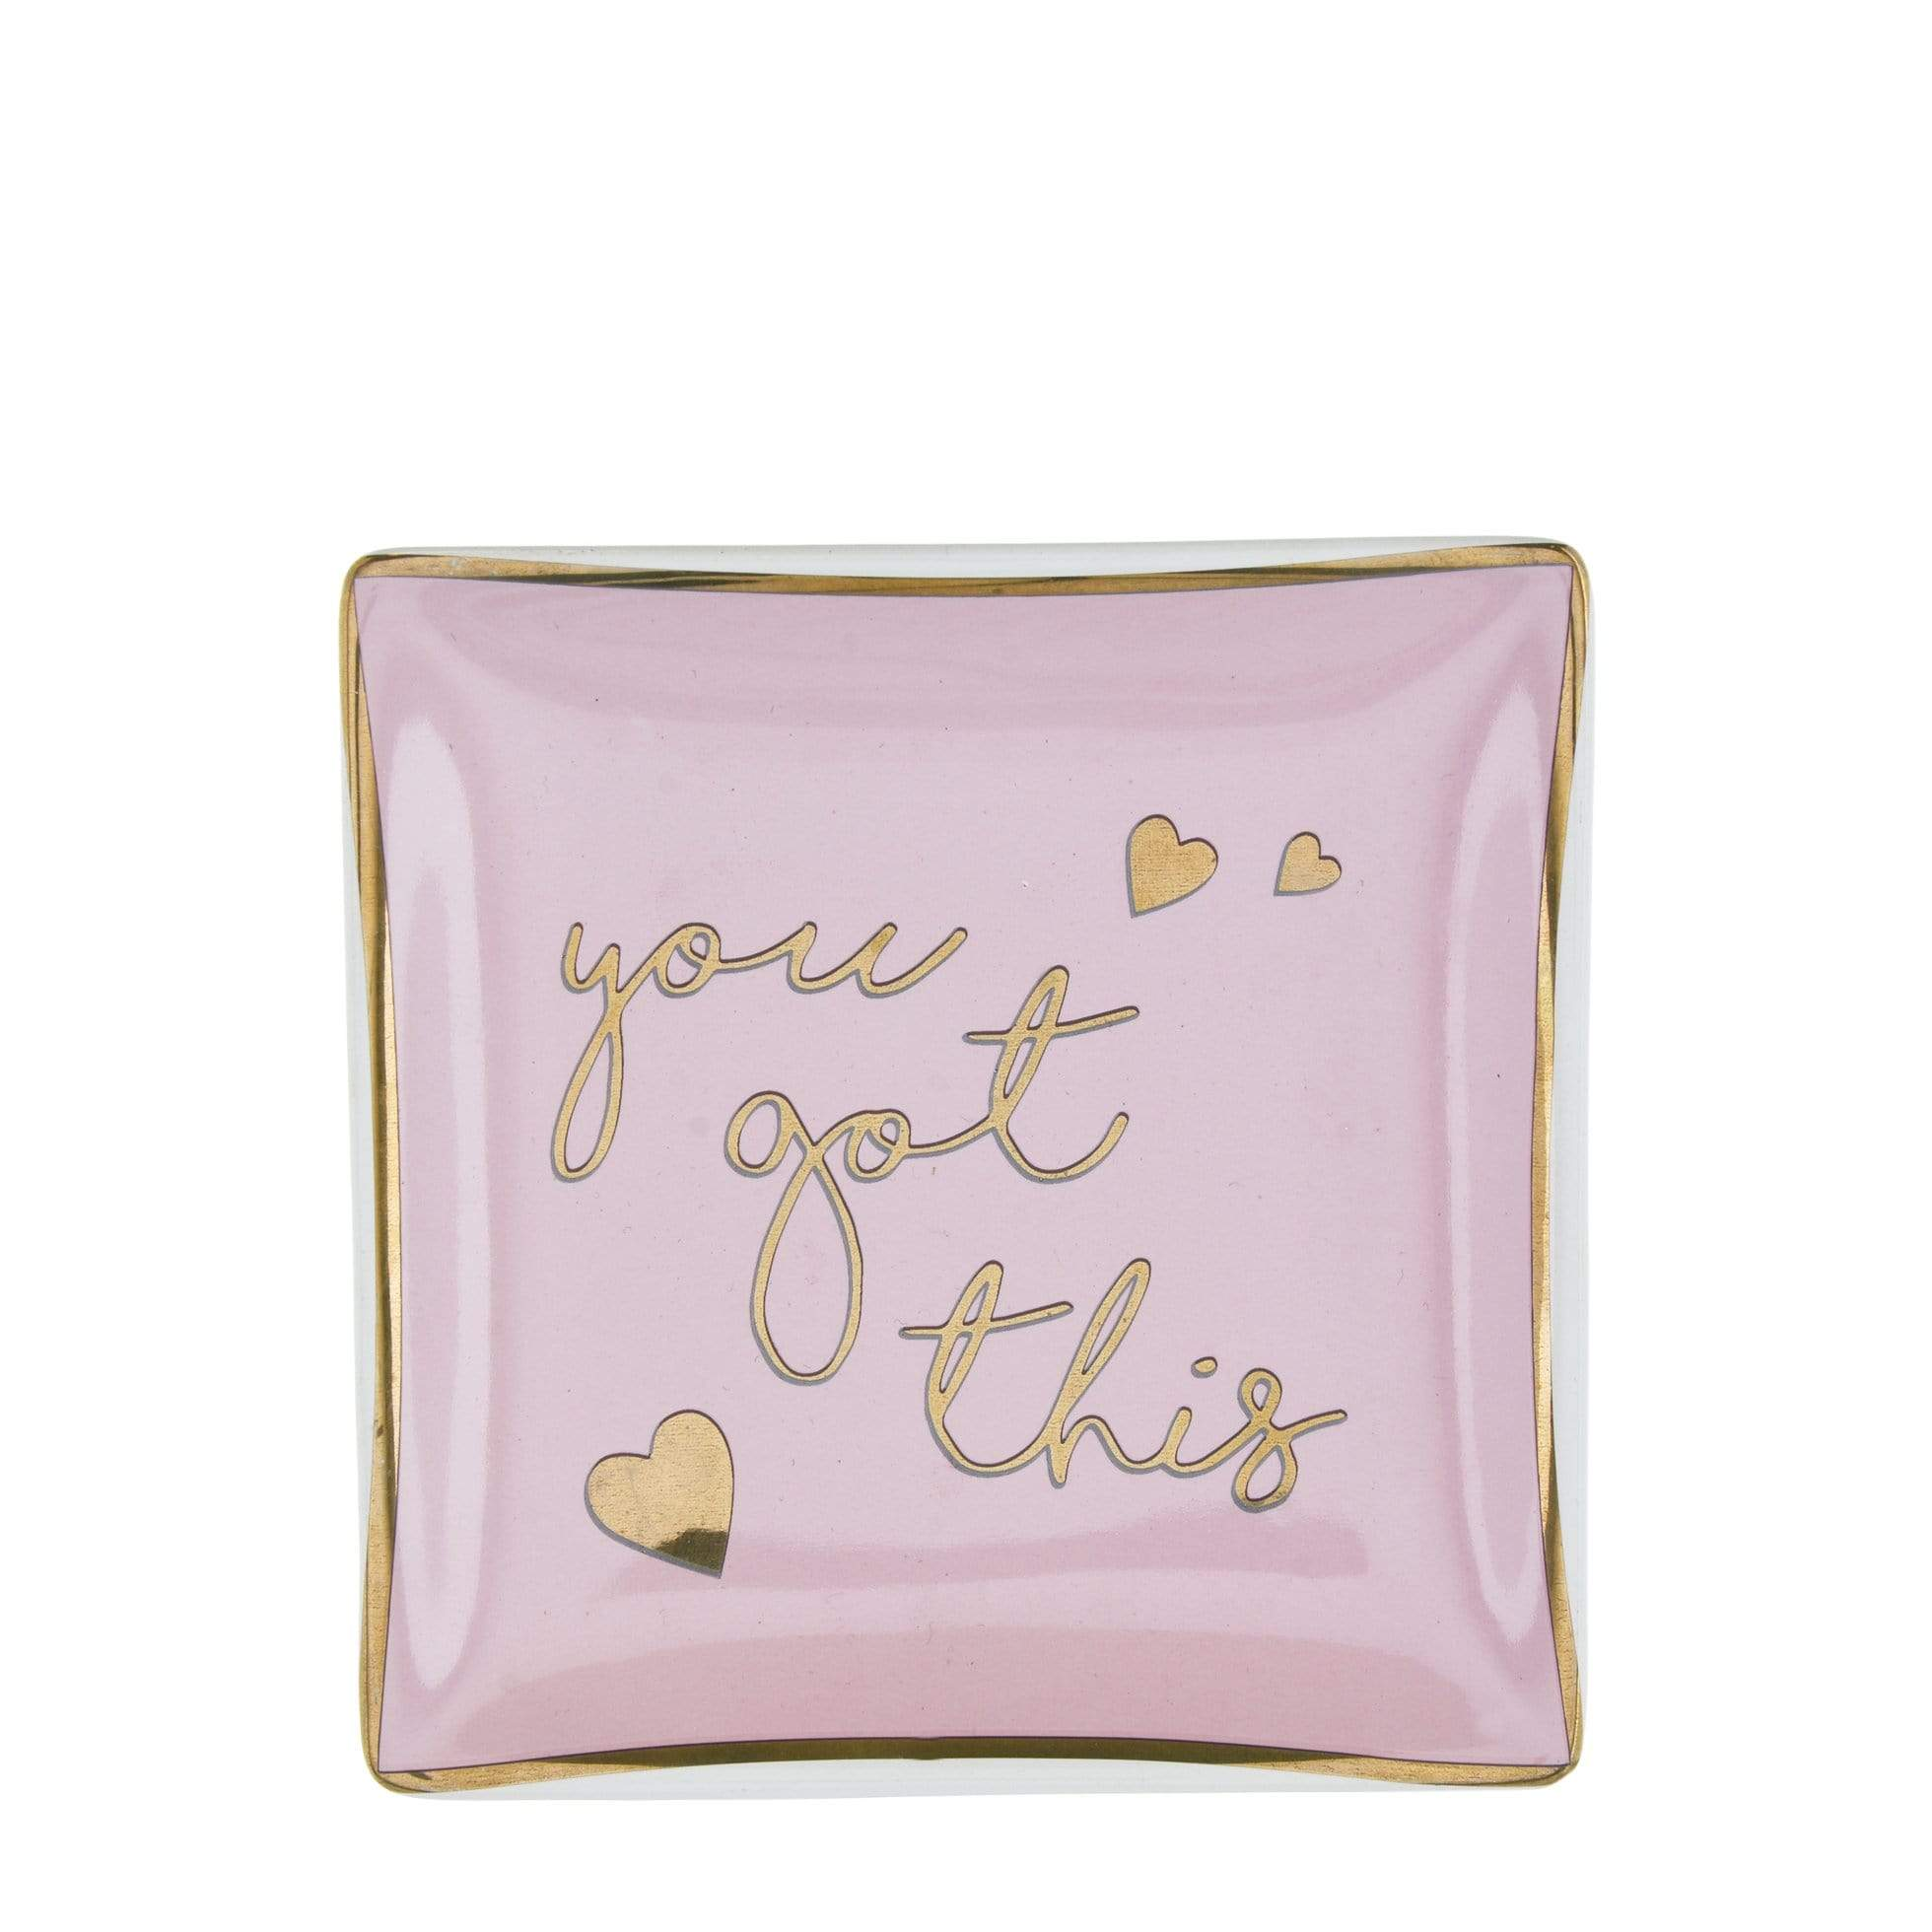 Candlelight Home Trinket Boxes & Dishes You Got This Square Trinket Dish Pink and Rose Gold 12cm 12PK